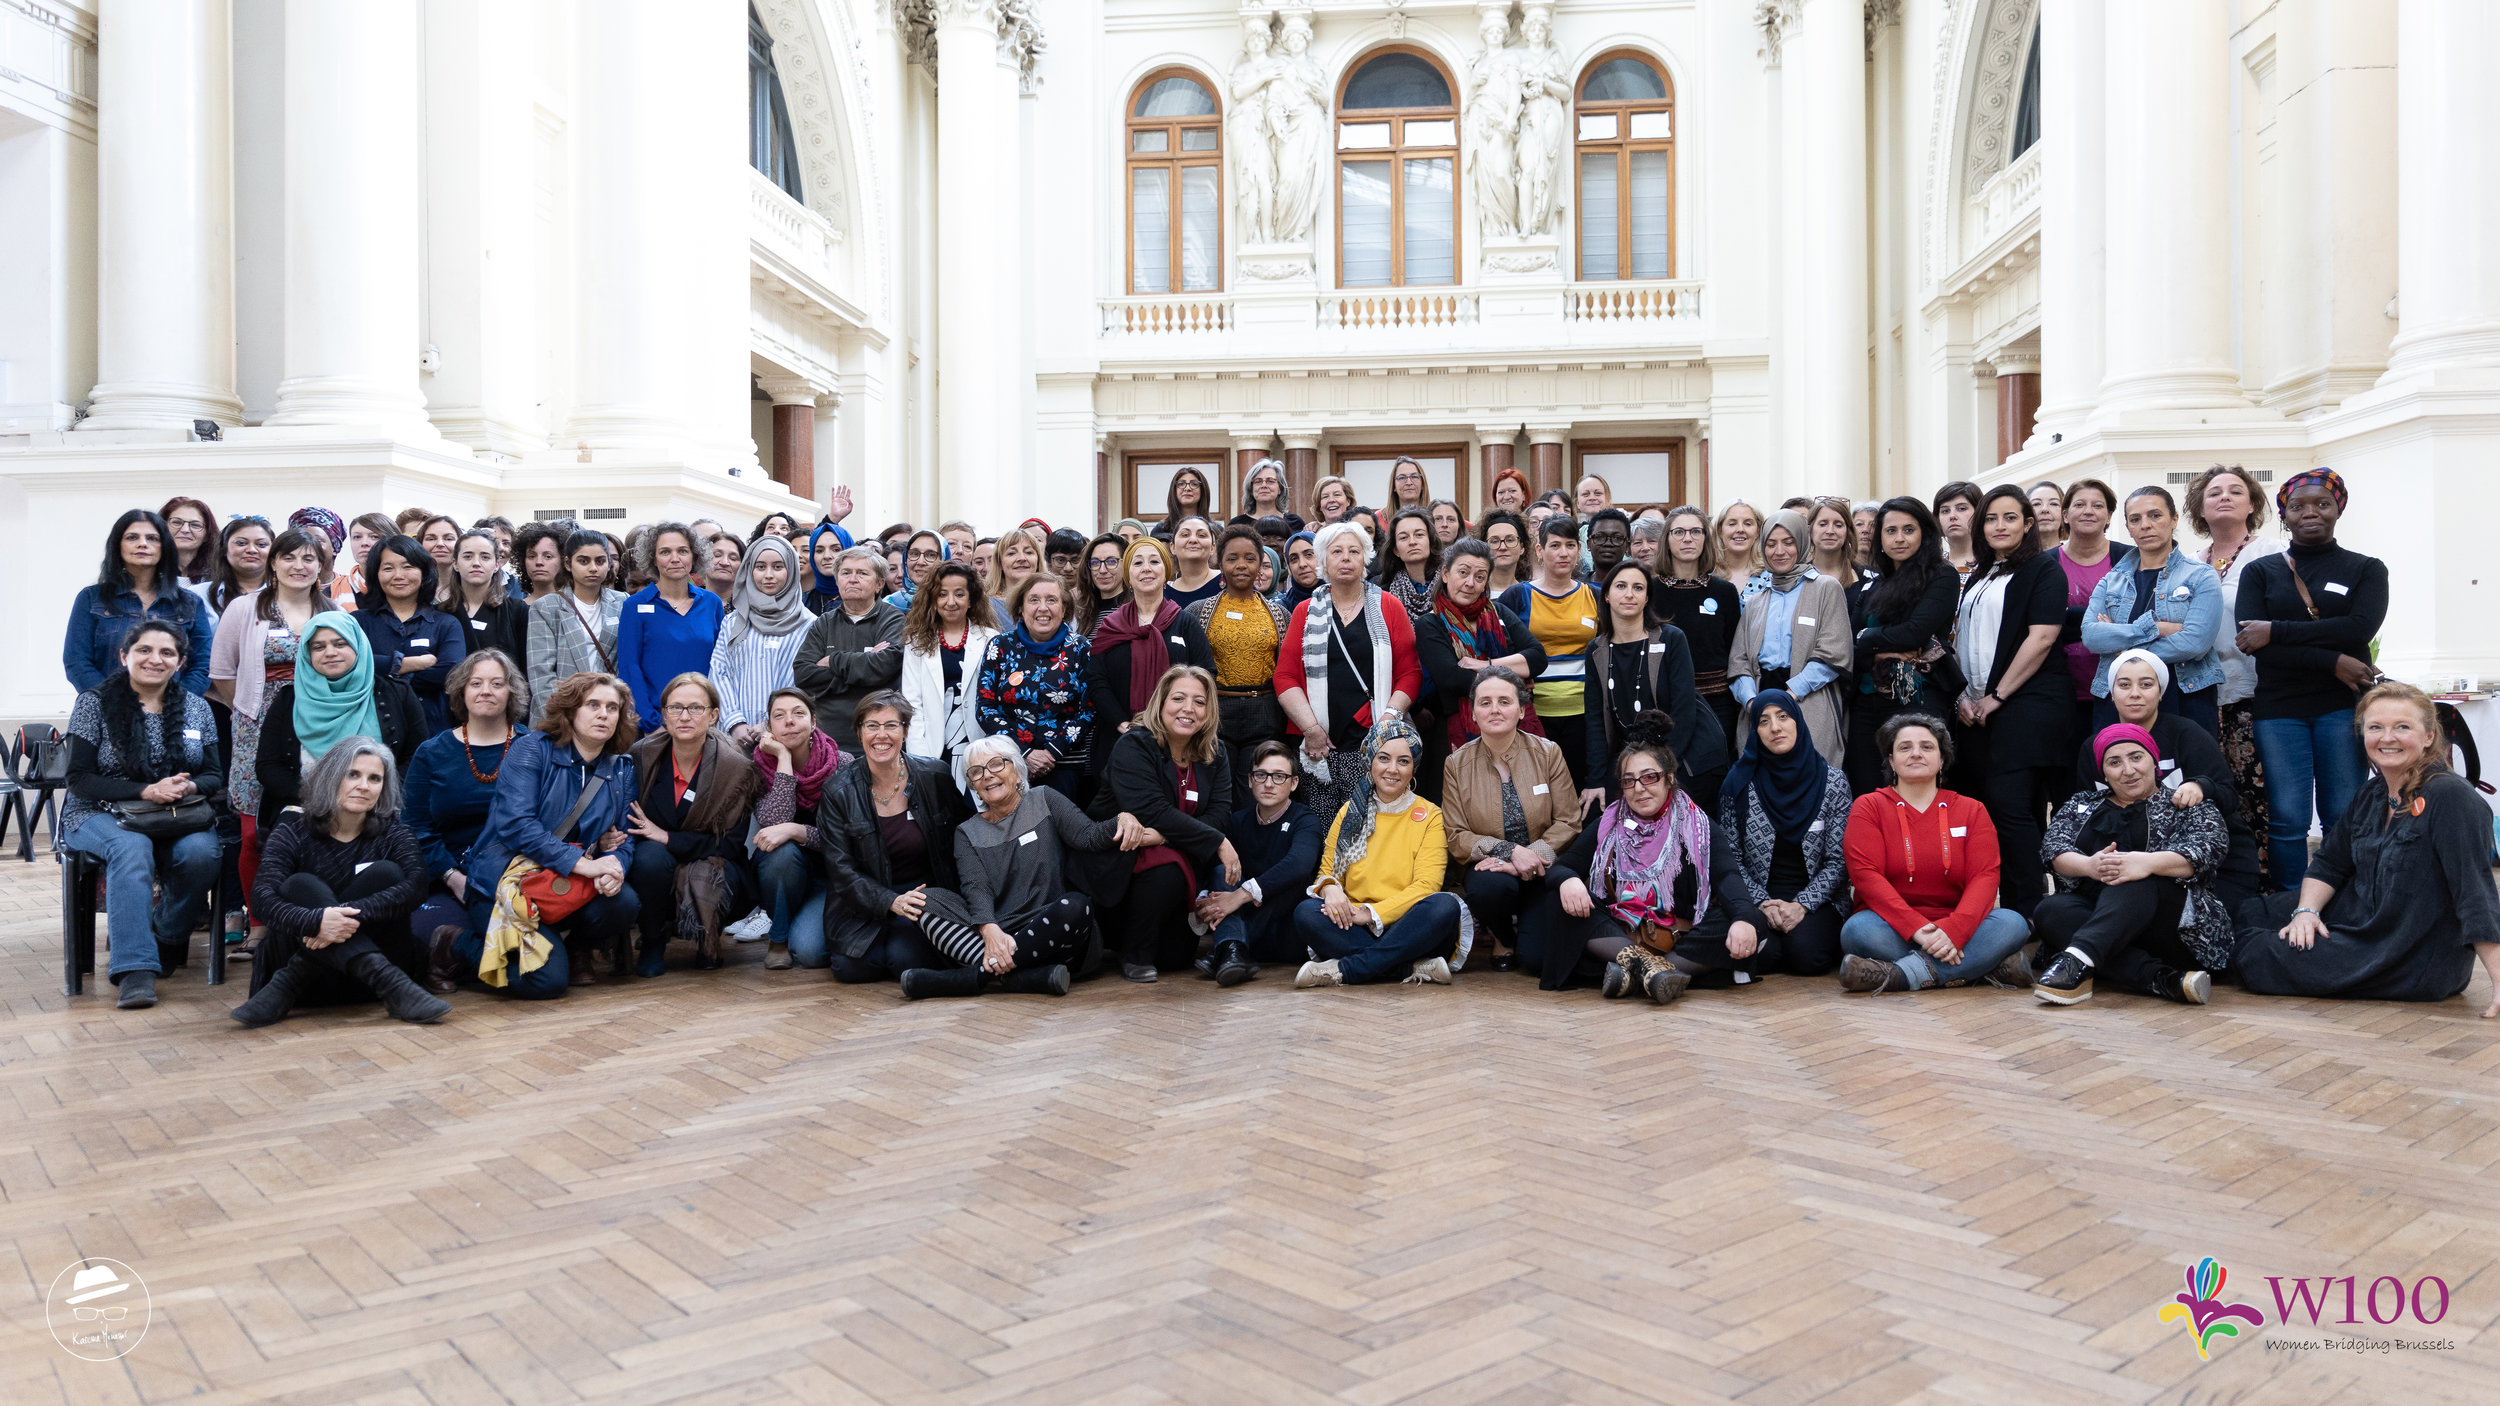 W100 - all 100 group photo - 30.03.19.jpg